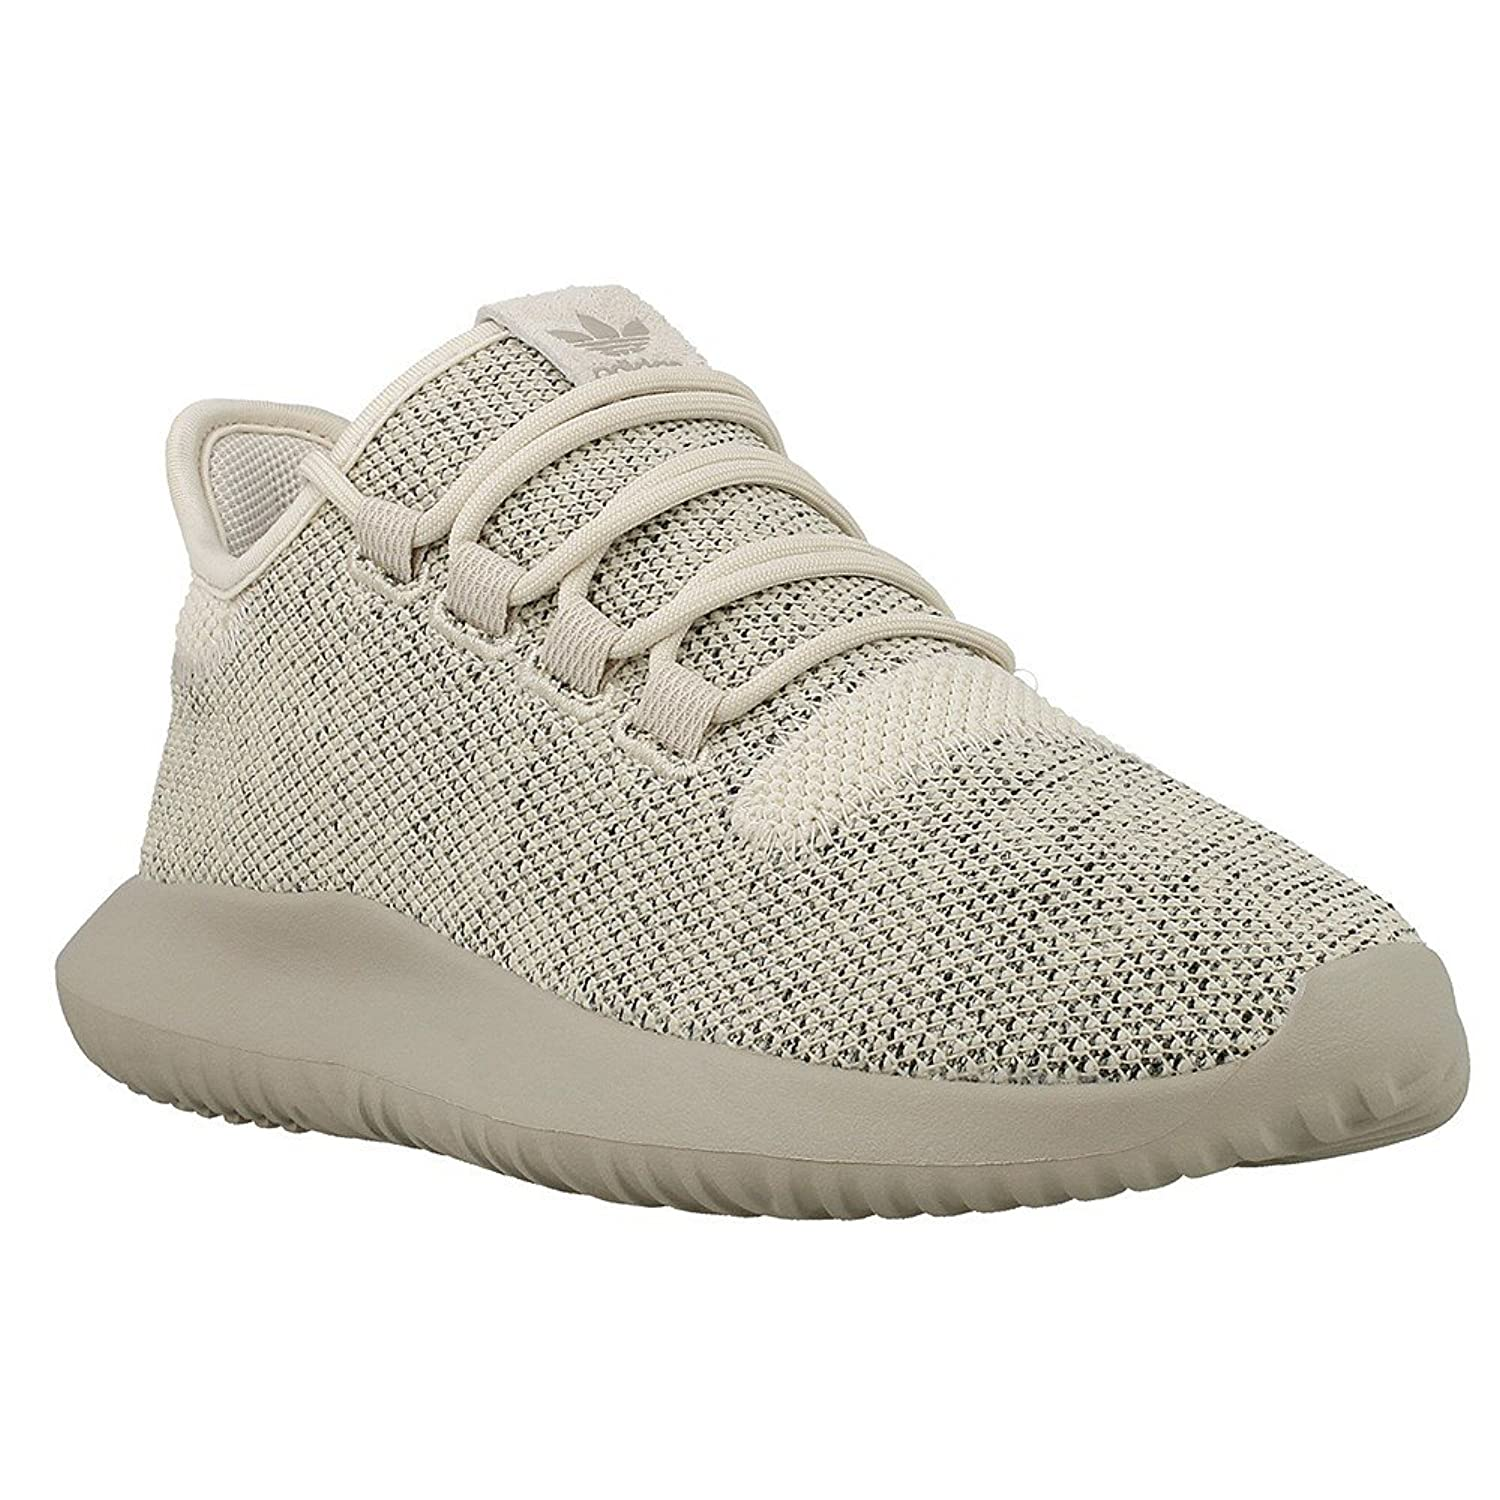 adidas Originals Tubular Shadow Women's Running Shoes Dust